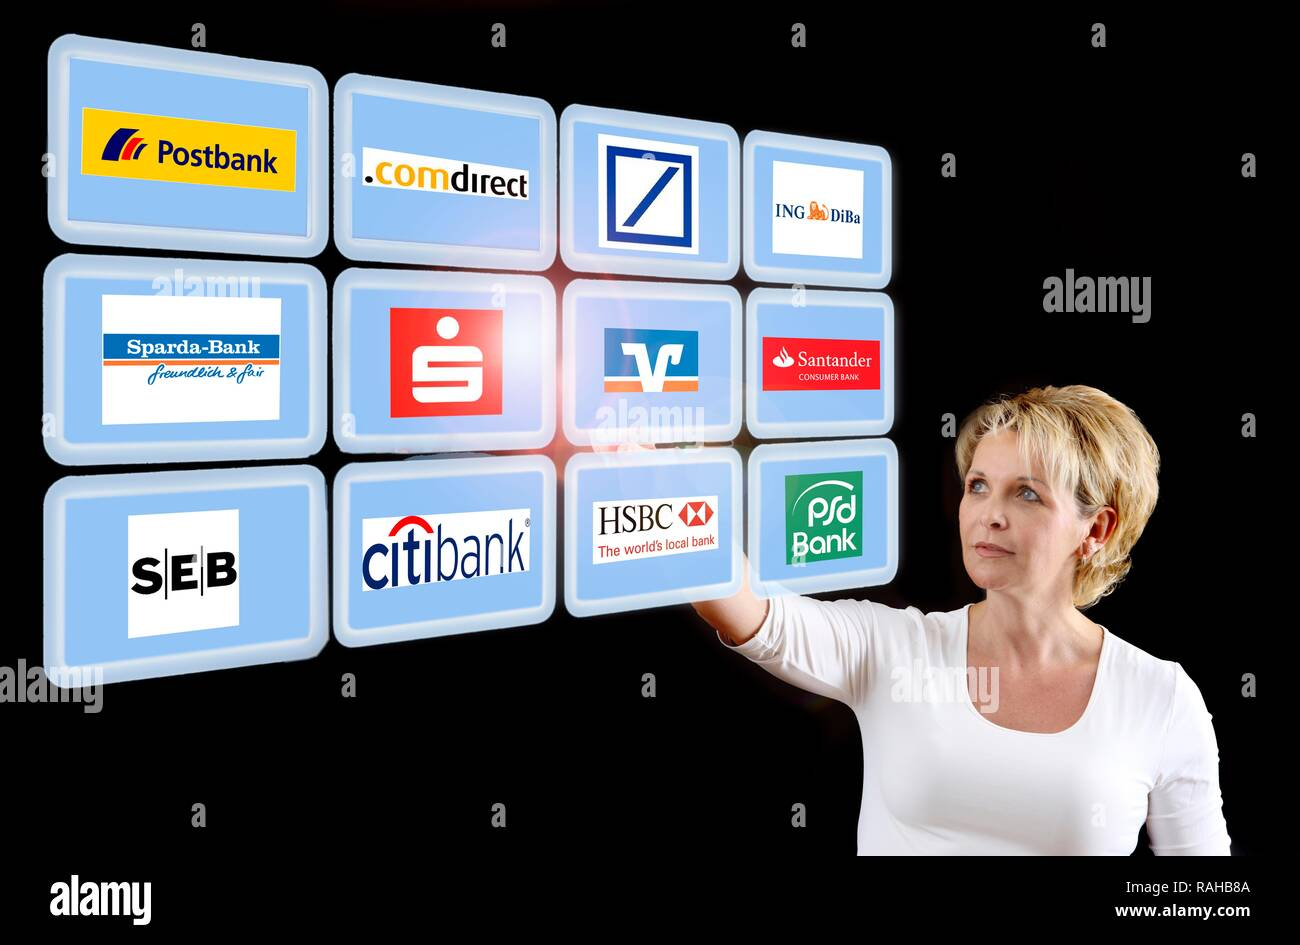 Woman working with a virtual screen, touch screens, banks, financial institutions Stock Photo